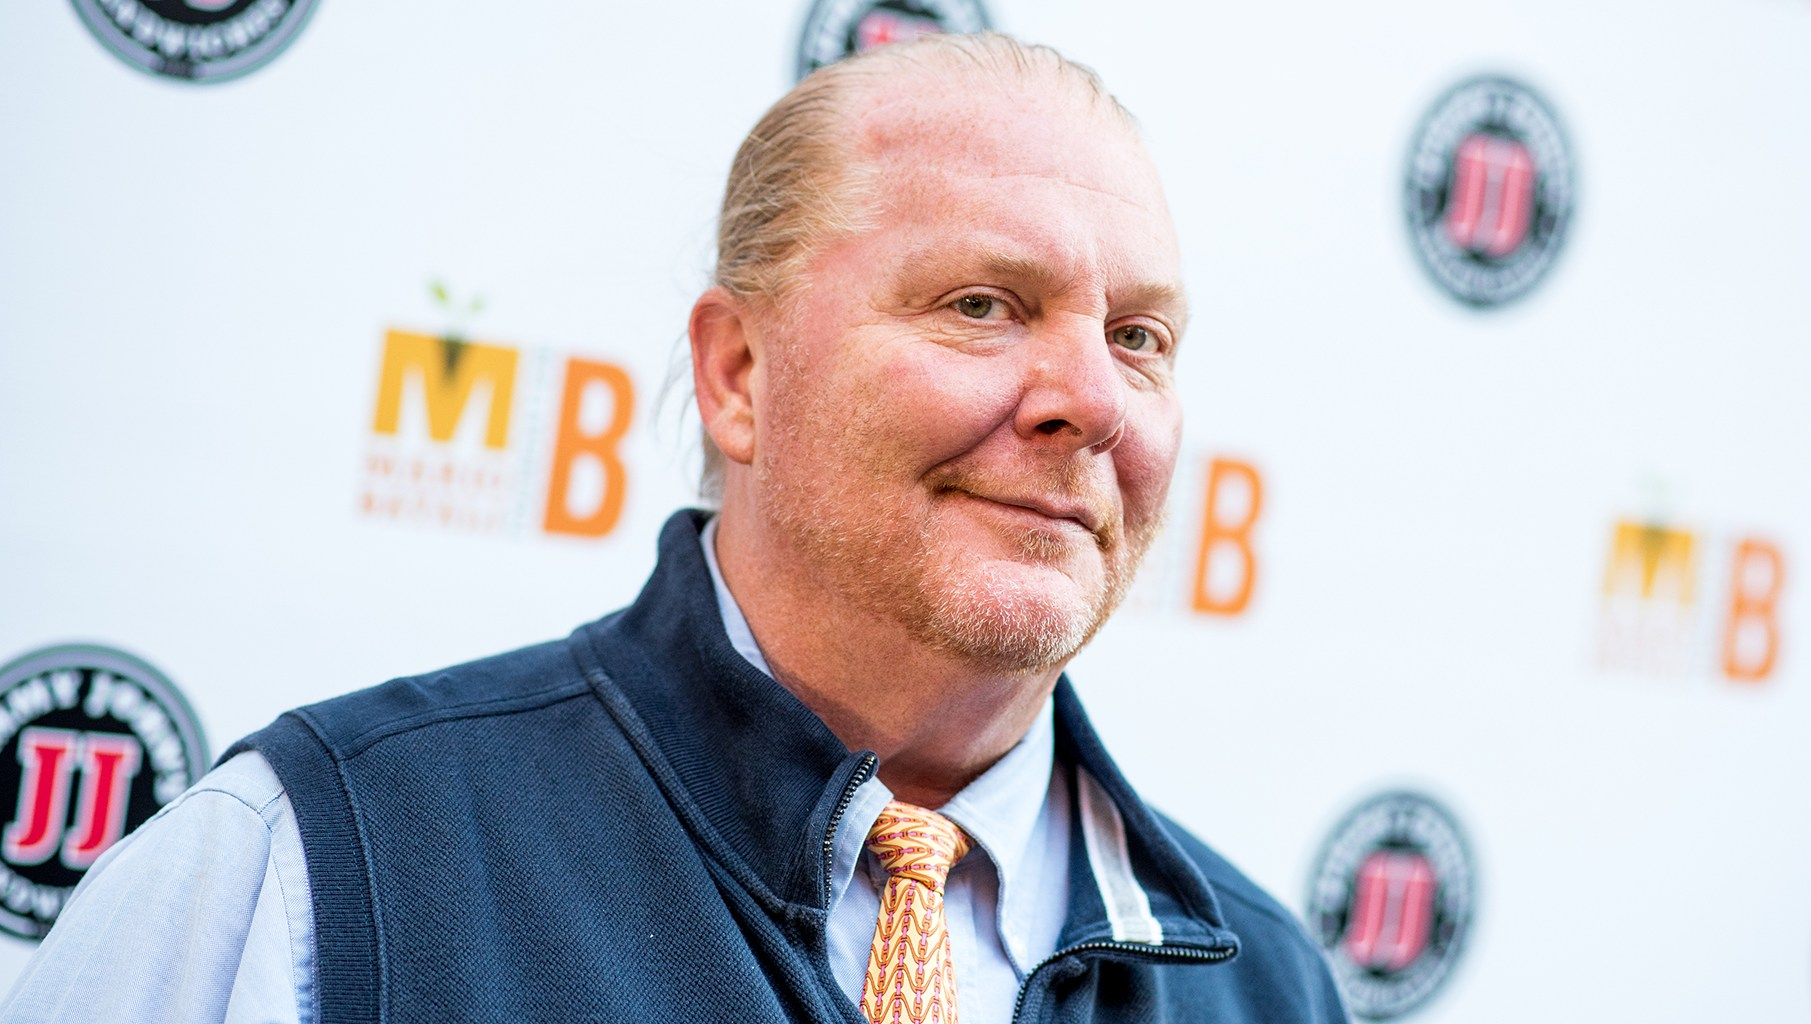 Mario Batali Breaks Silence One Year After Sexual Misconduct Allegations: 'It's Been a Bad Year'